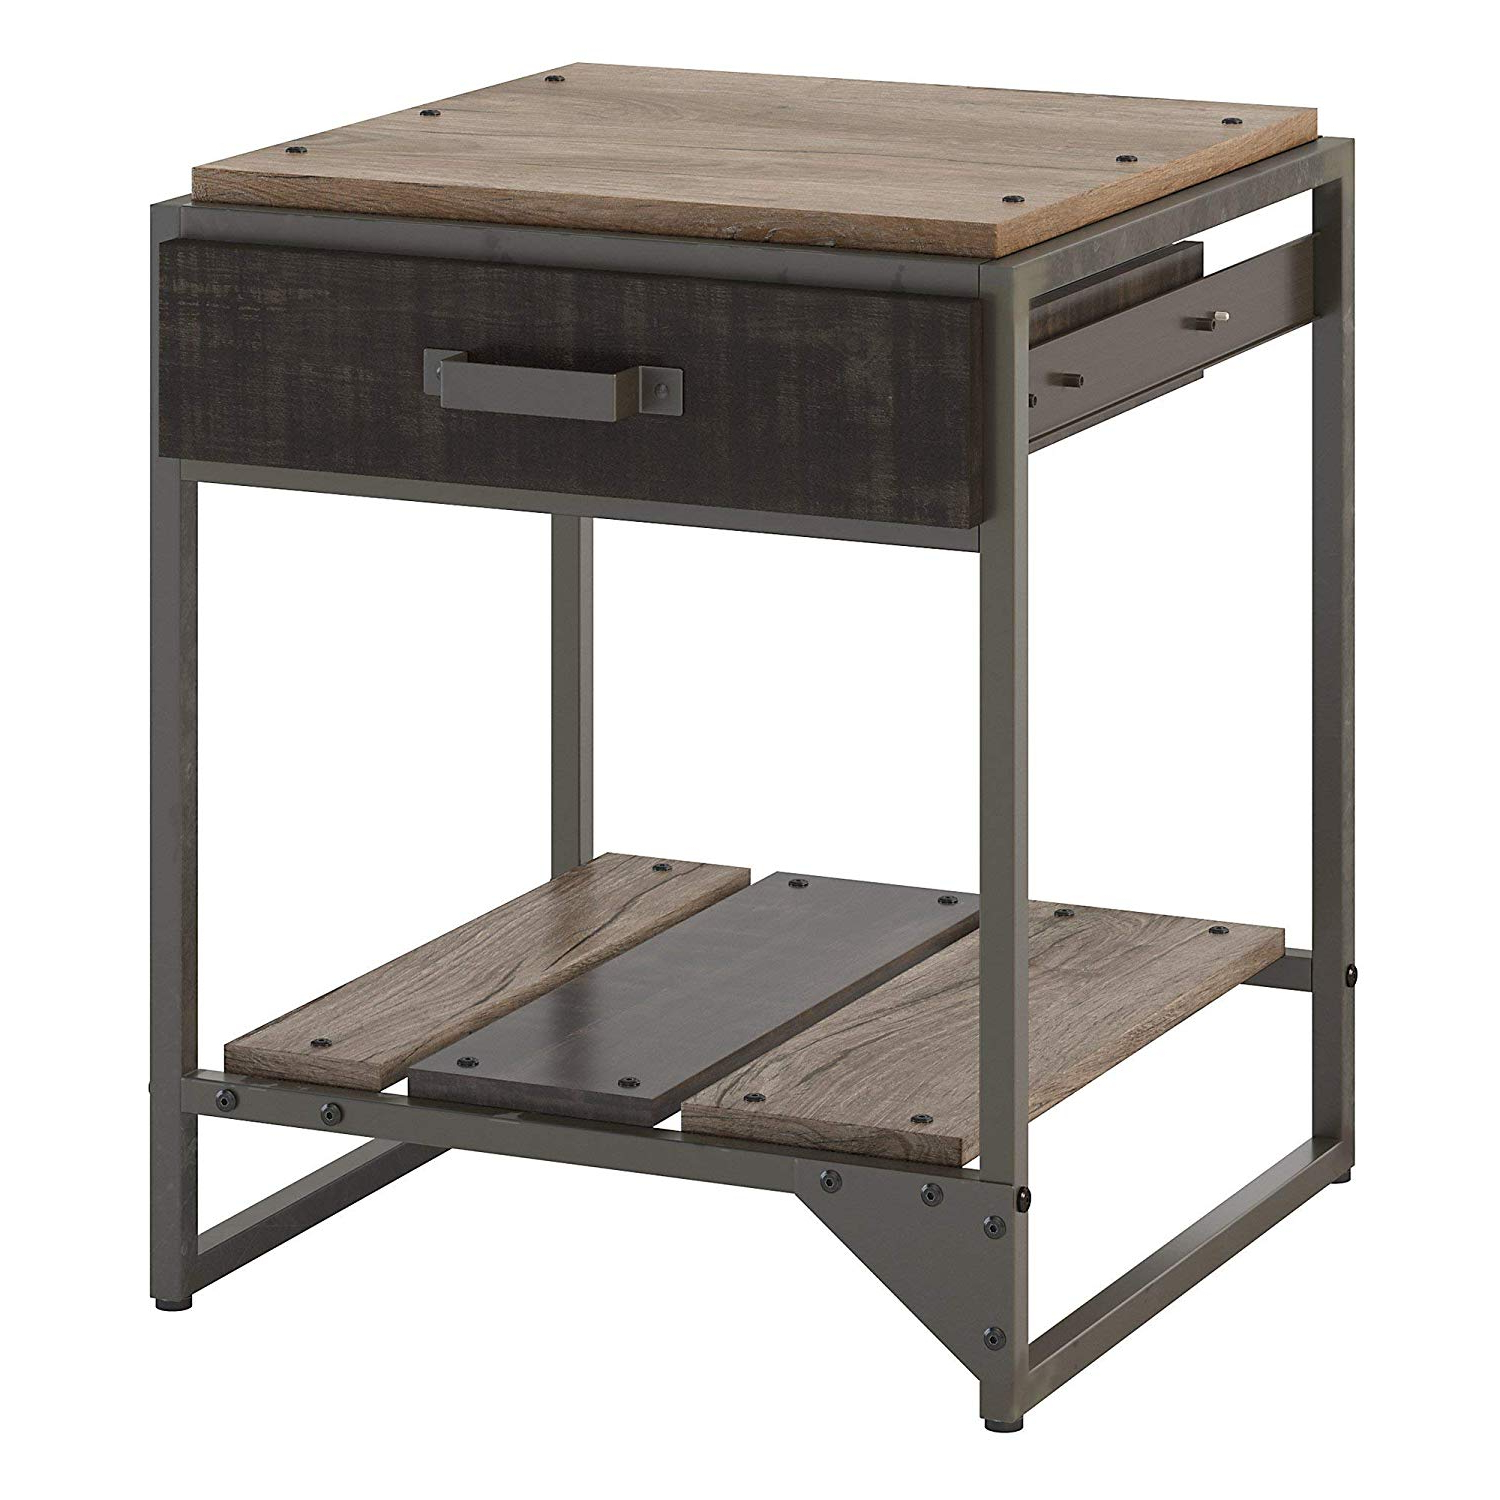 Most Popular Thick White Marble Slab Dining Tables With Weathered Grey Finish Inside Amazon: Bush Furniture Rft120Rg 03 Refinery End Table (View 12 of 25)